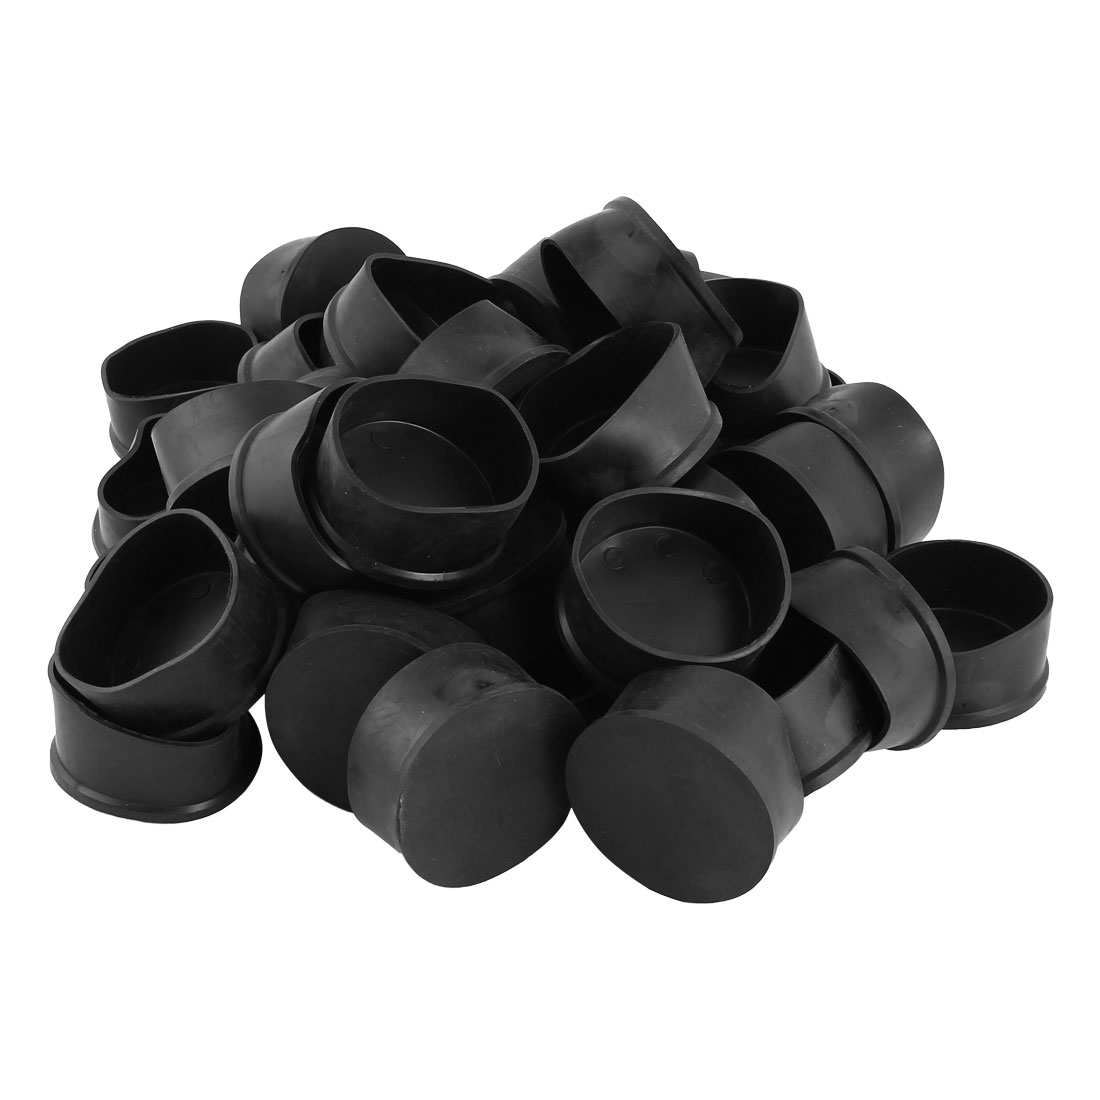 Home Rubber Furniture Chair Foot Legs Cover Pad Caps Black 63mm Hole Dia 39 Pcs